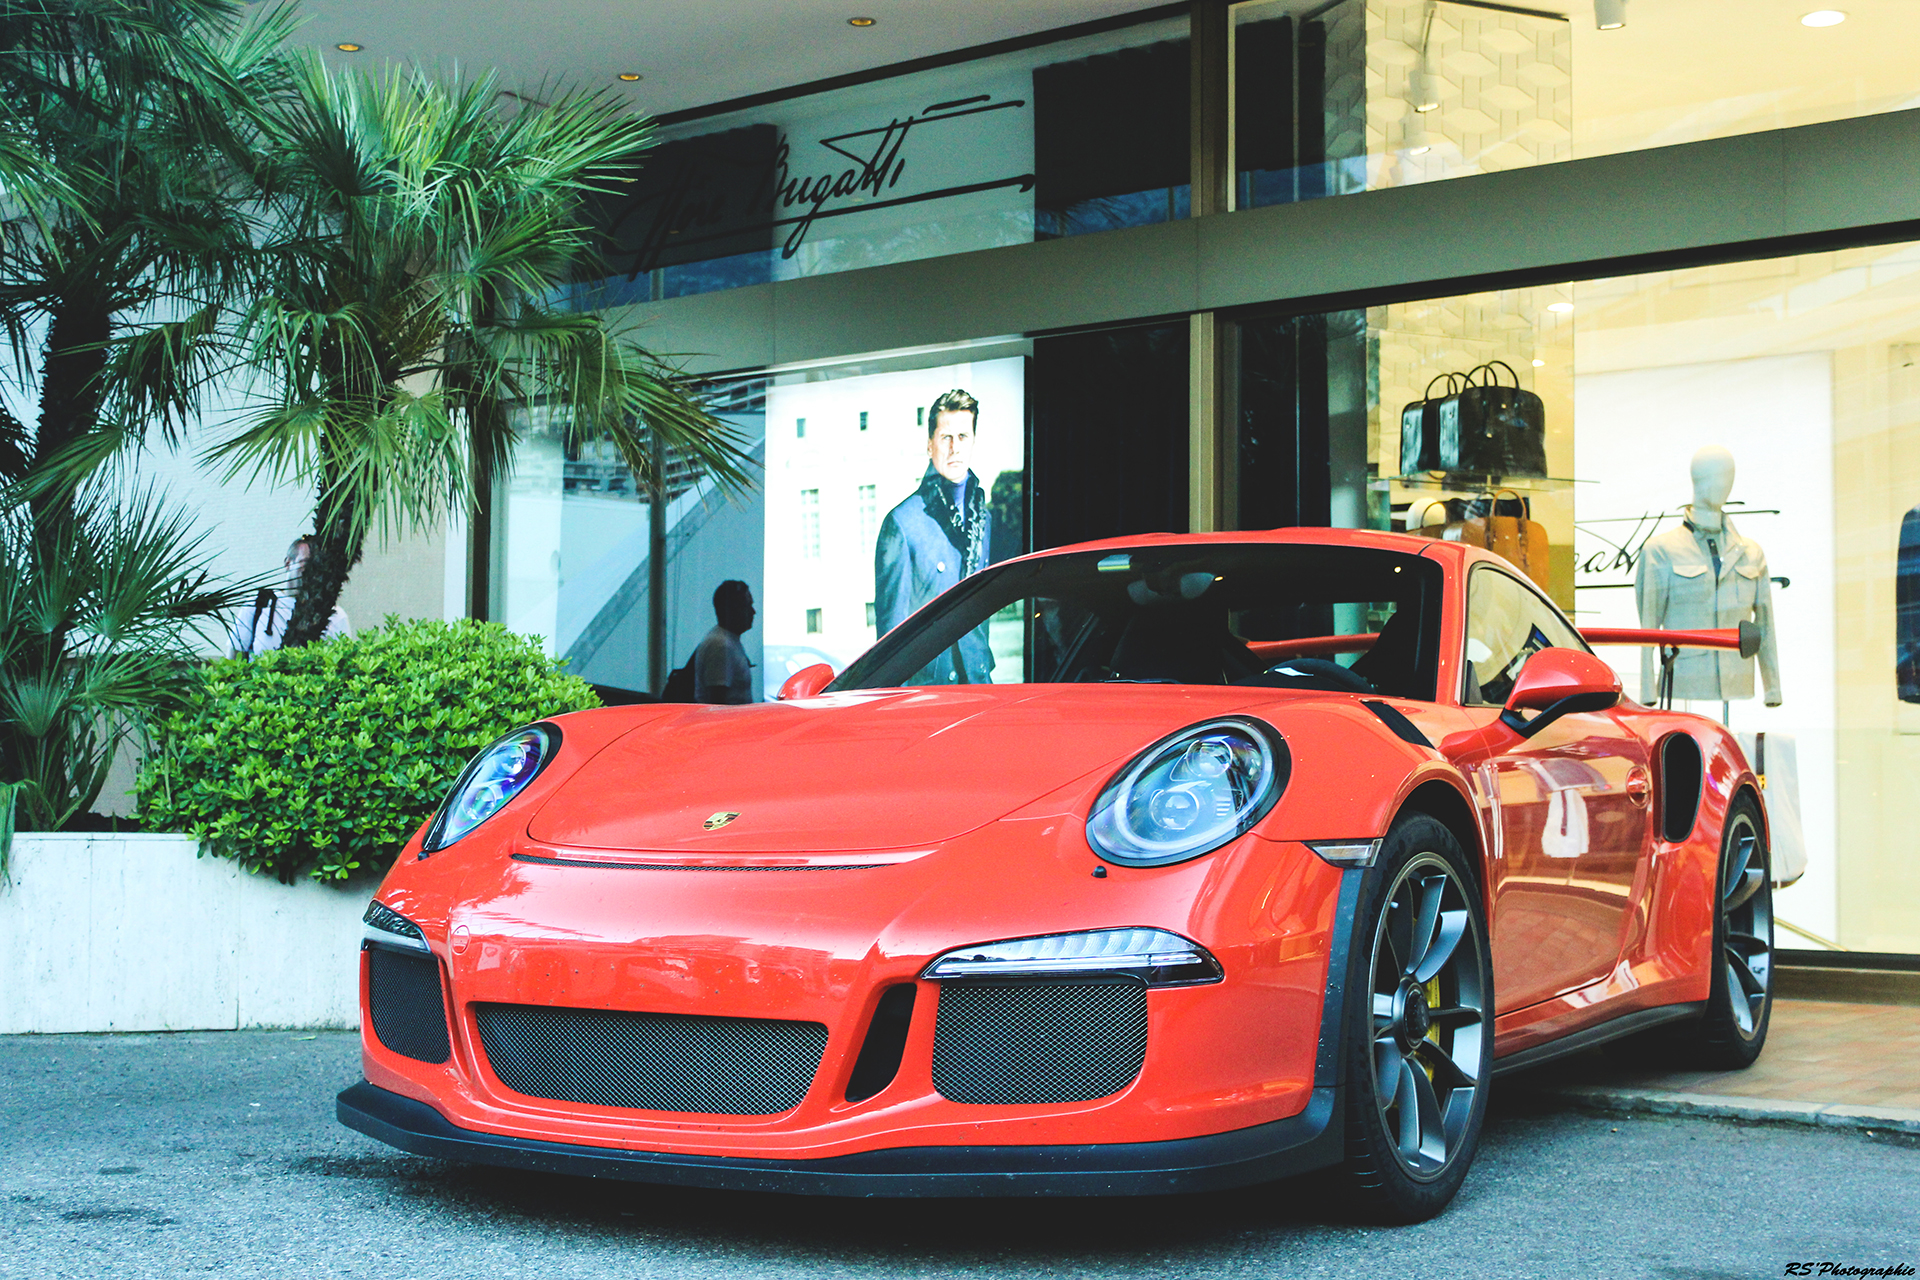 Porsche GT3 RS front - Top Marques Monaco 2016 - Arnaud Demasier RS Photographie